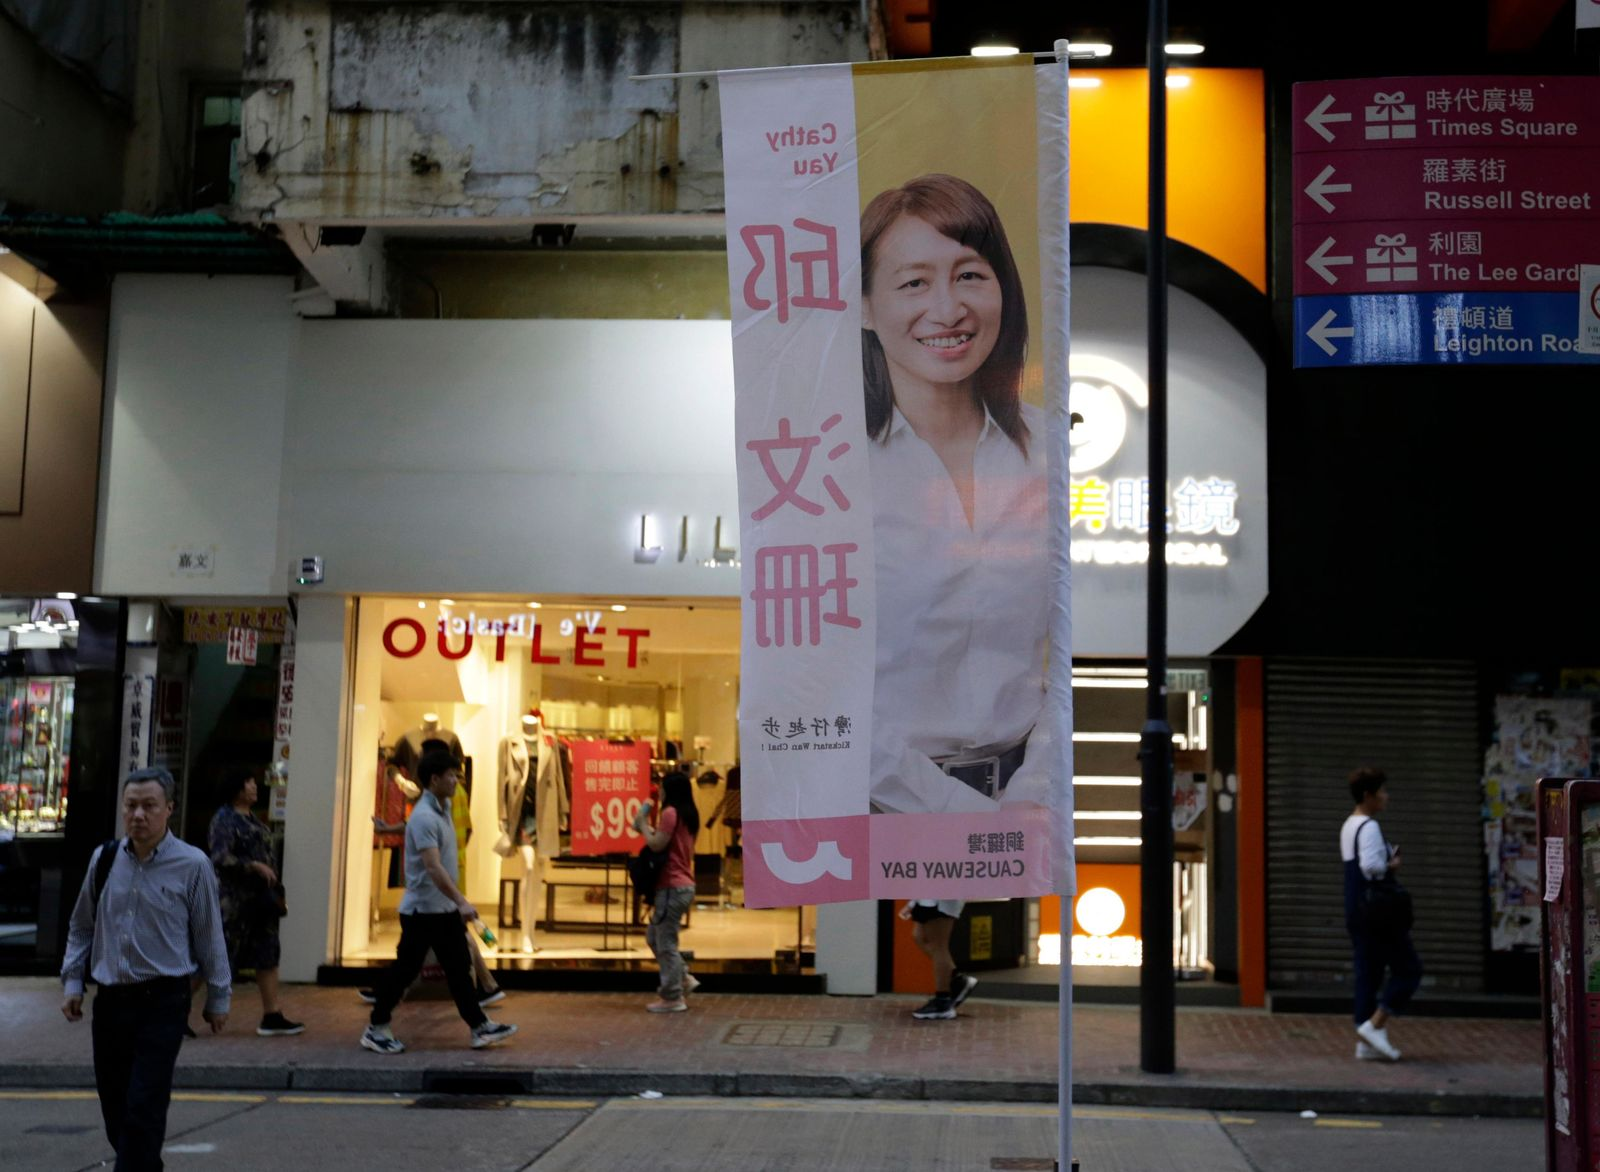 In this photo taken Thursday, Nov. 7, 2019, people walk past the campaign banner for district council candidate Cathy Yau at Causeway Bay in Hong Kong. AP Photo/Dita Alangkara)